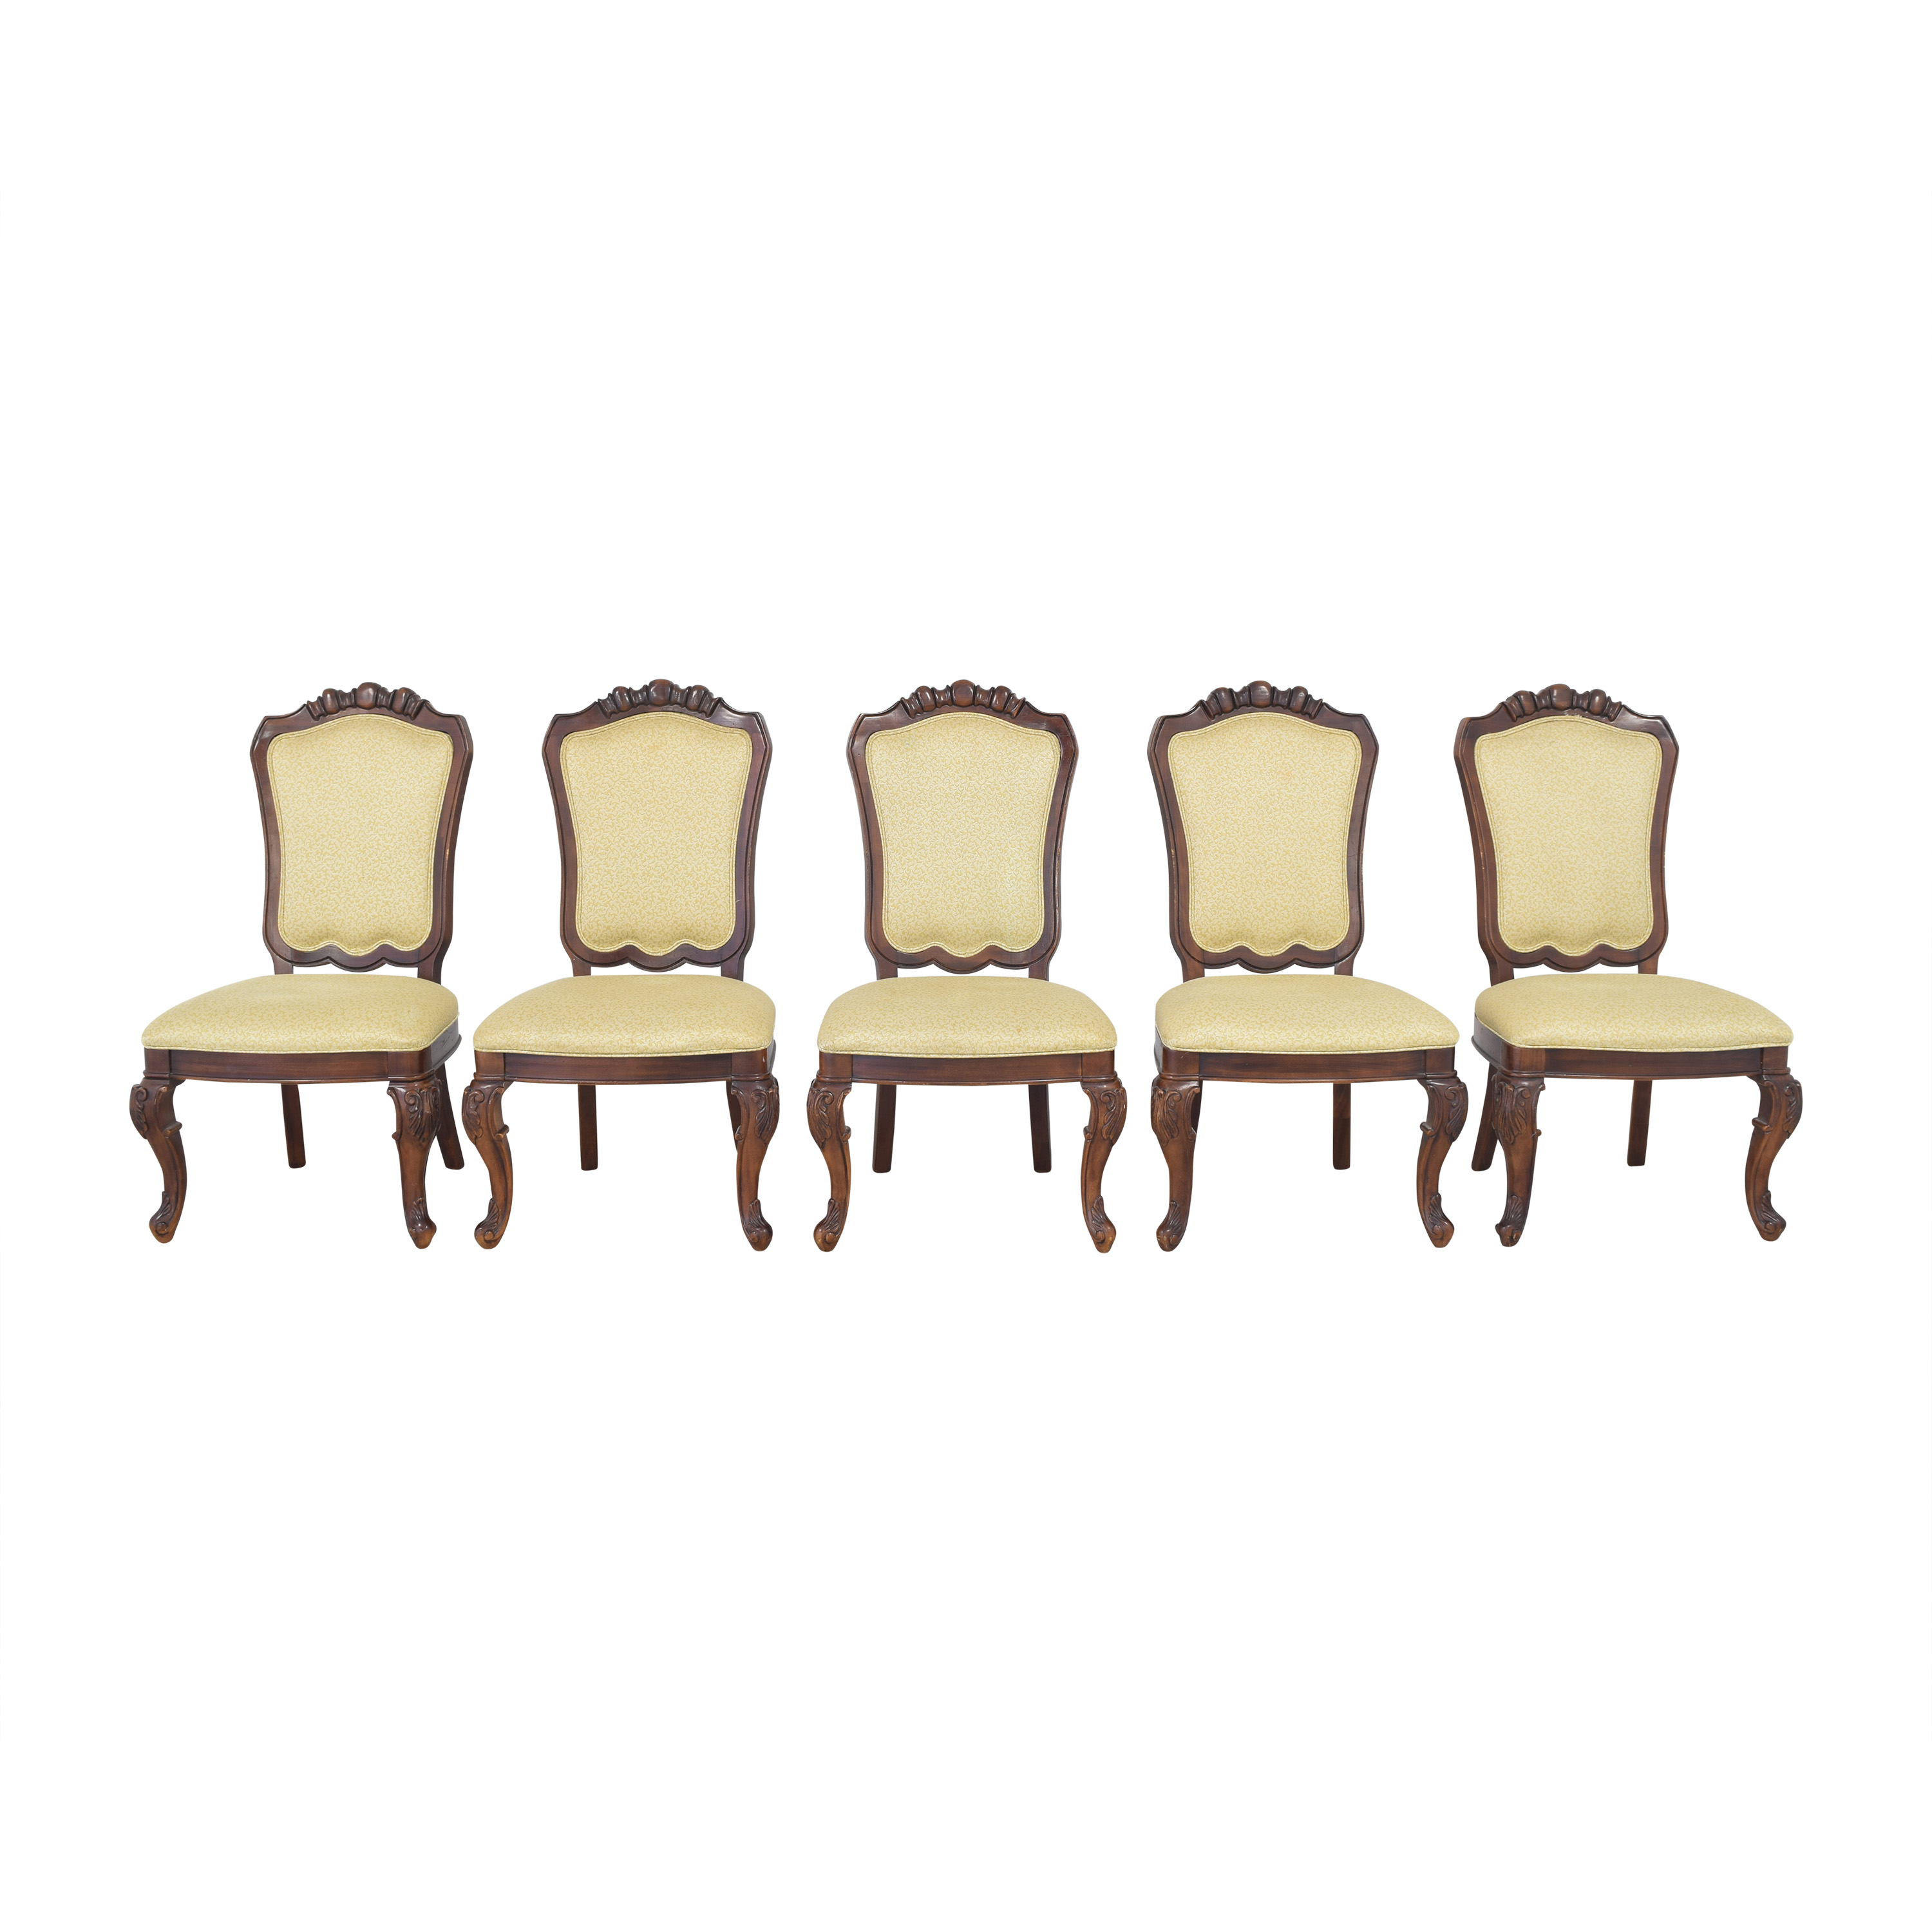 buy Thomasville Upholstered Dining Side Chairs Thomasville Dining Chairs